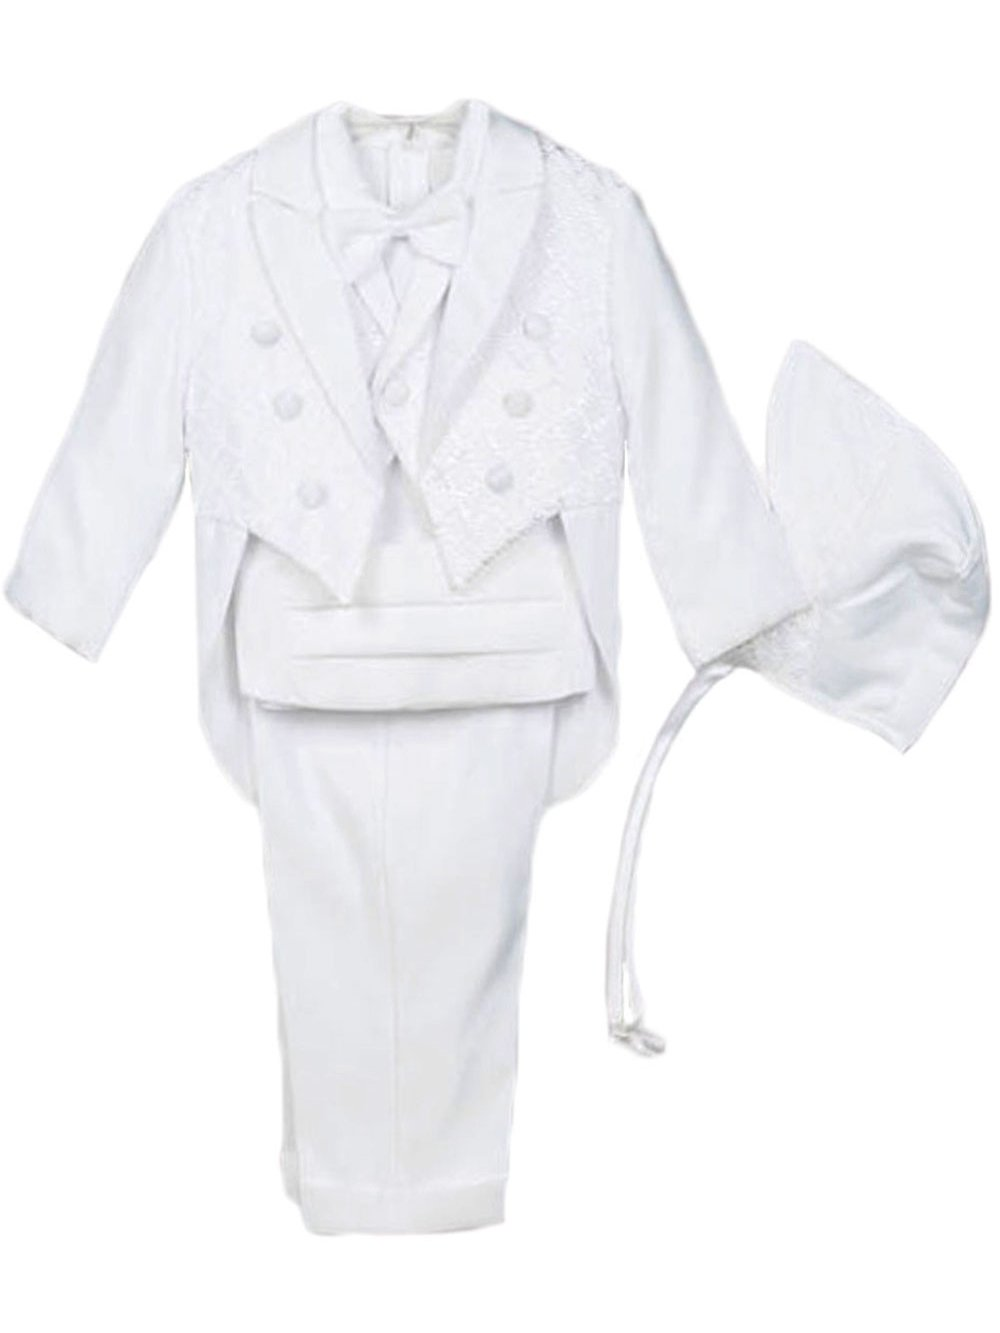 Kaifer Baby Boys' Pearce 5-Piece Christening Tuxedo - white, 24 months